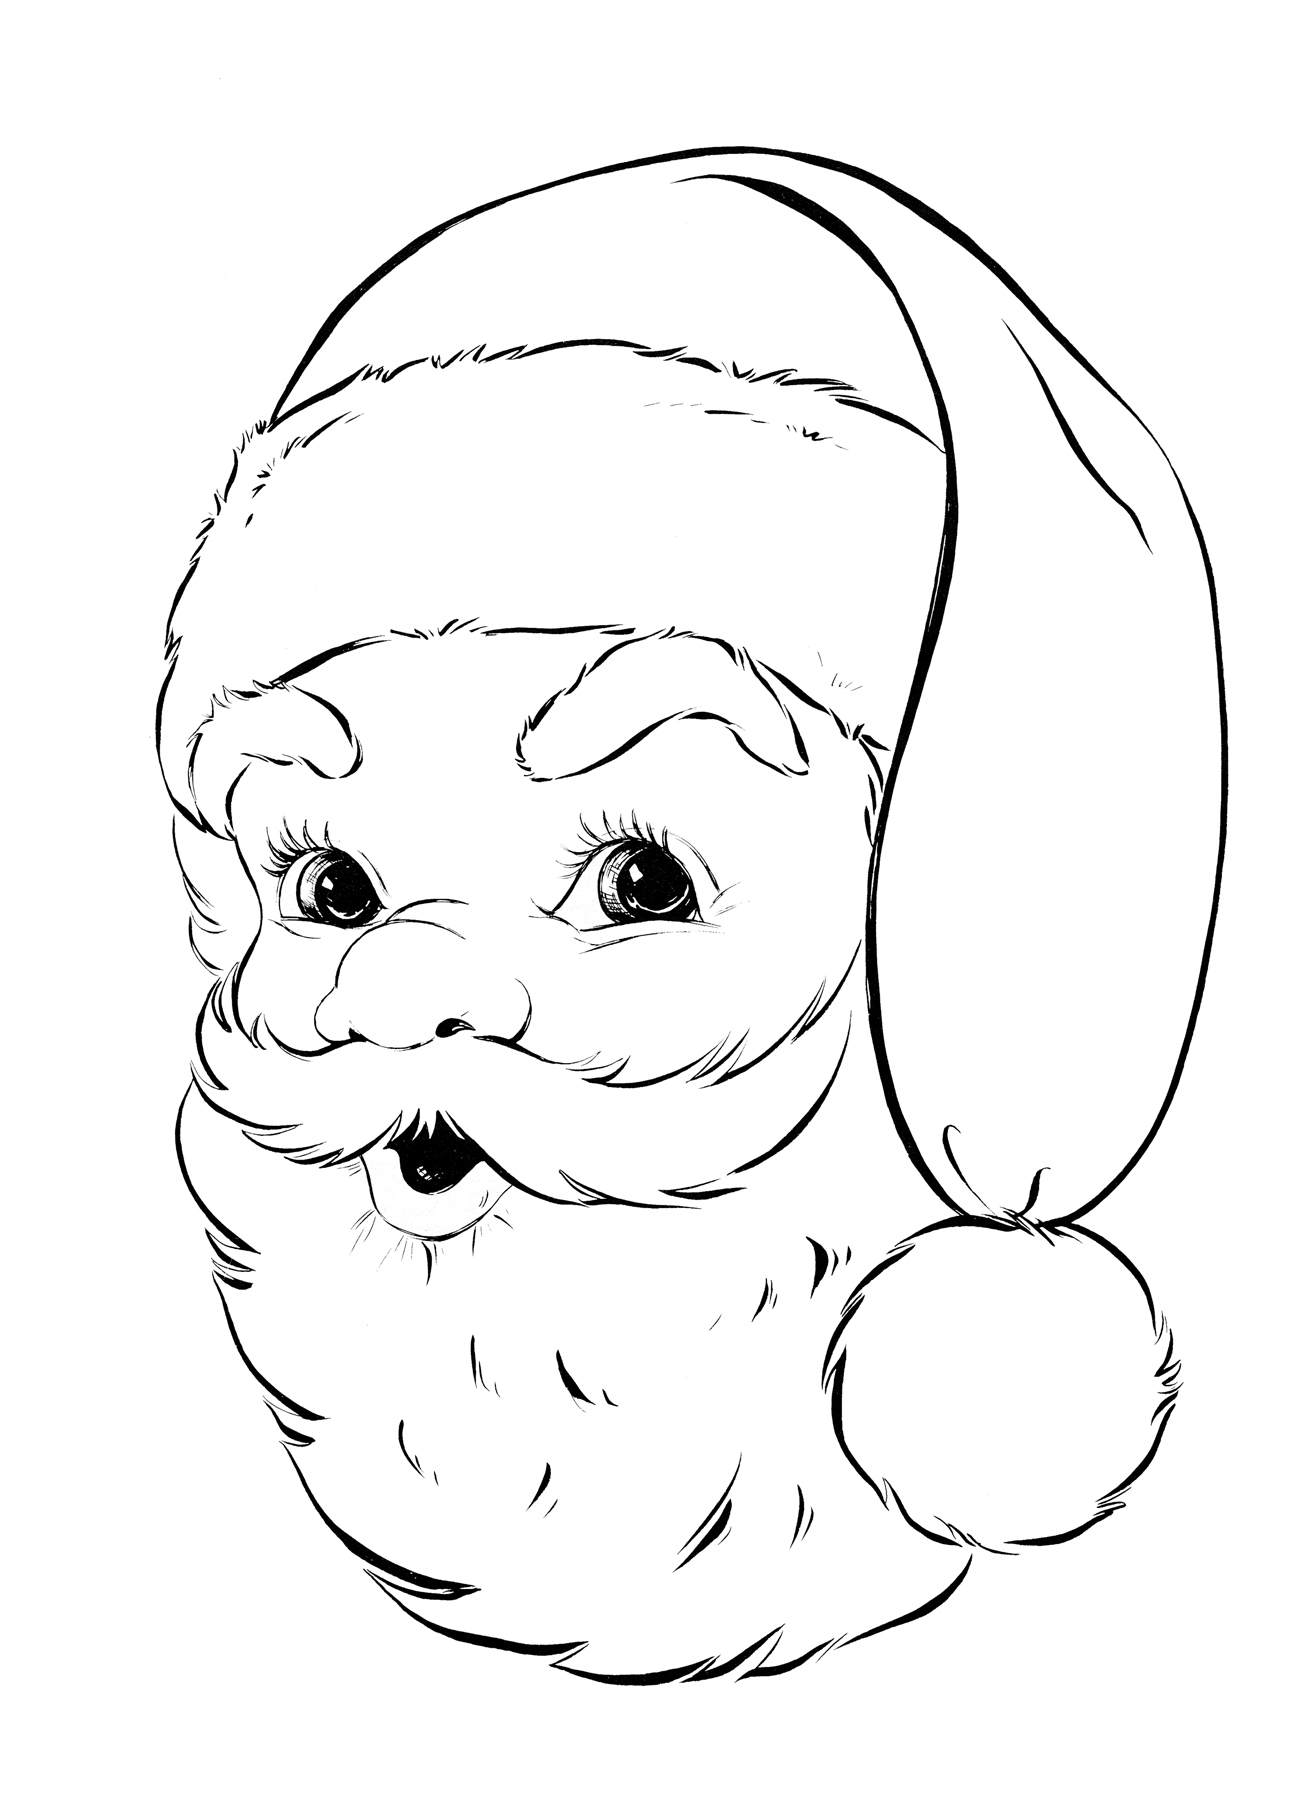 12 Free Printable Christmas Coloring Pages The Graphics Fairy